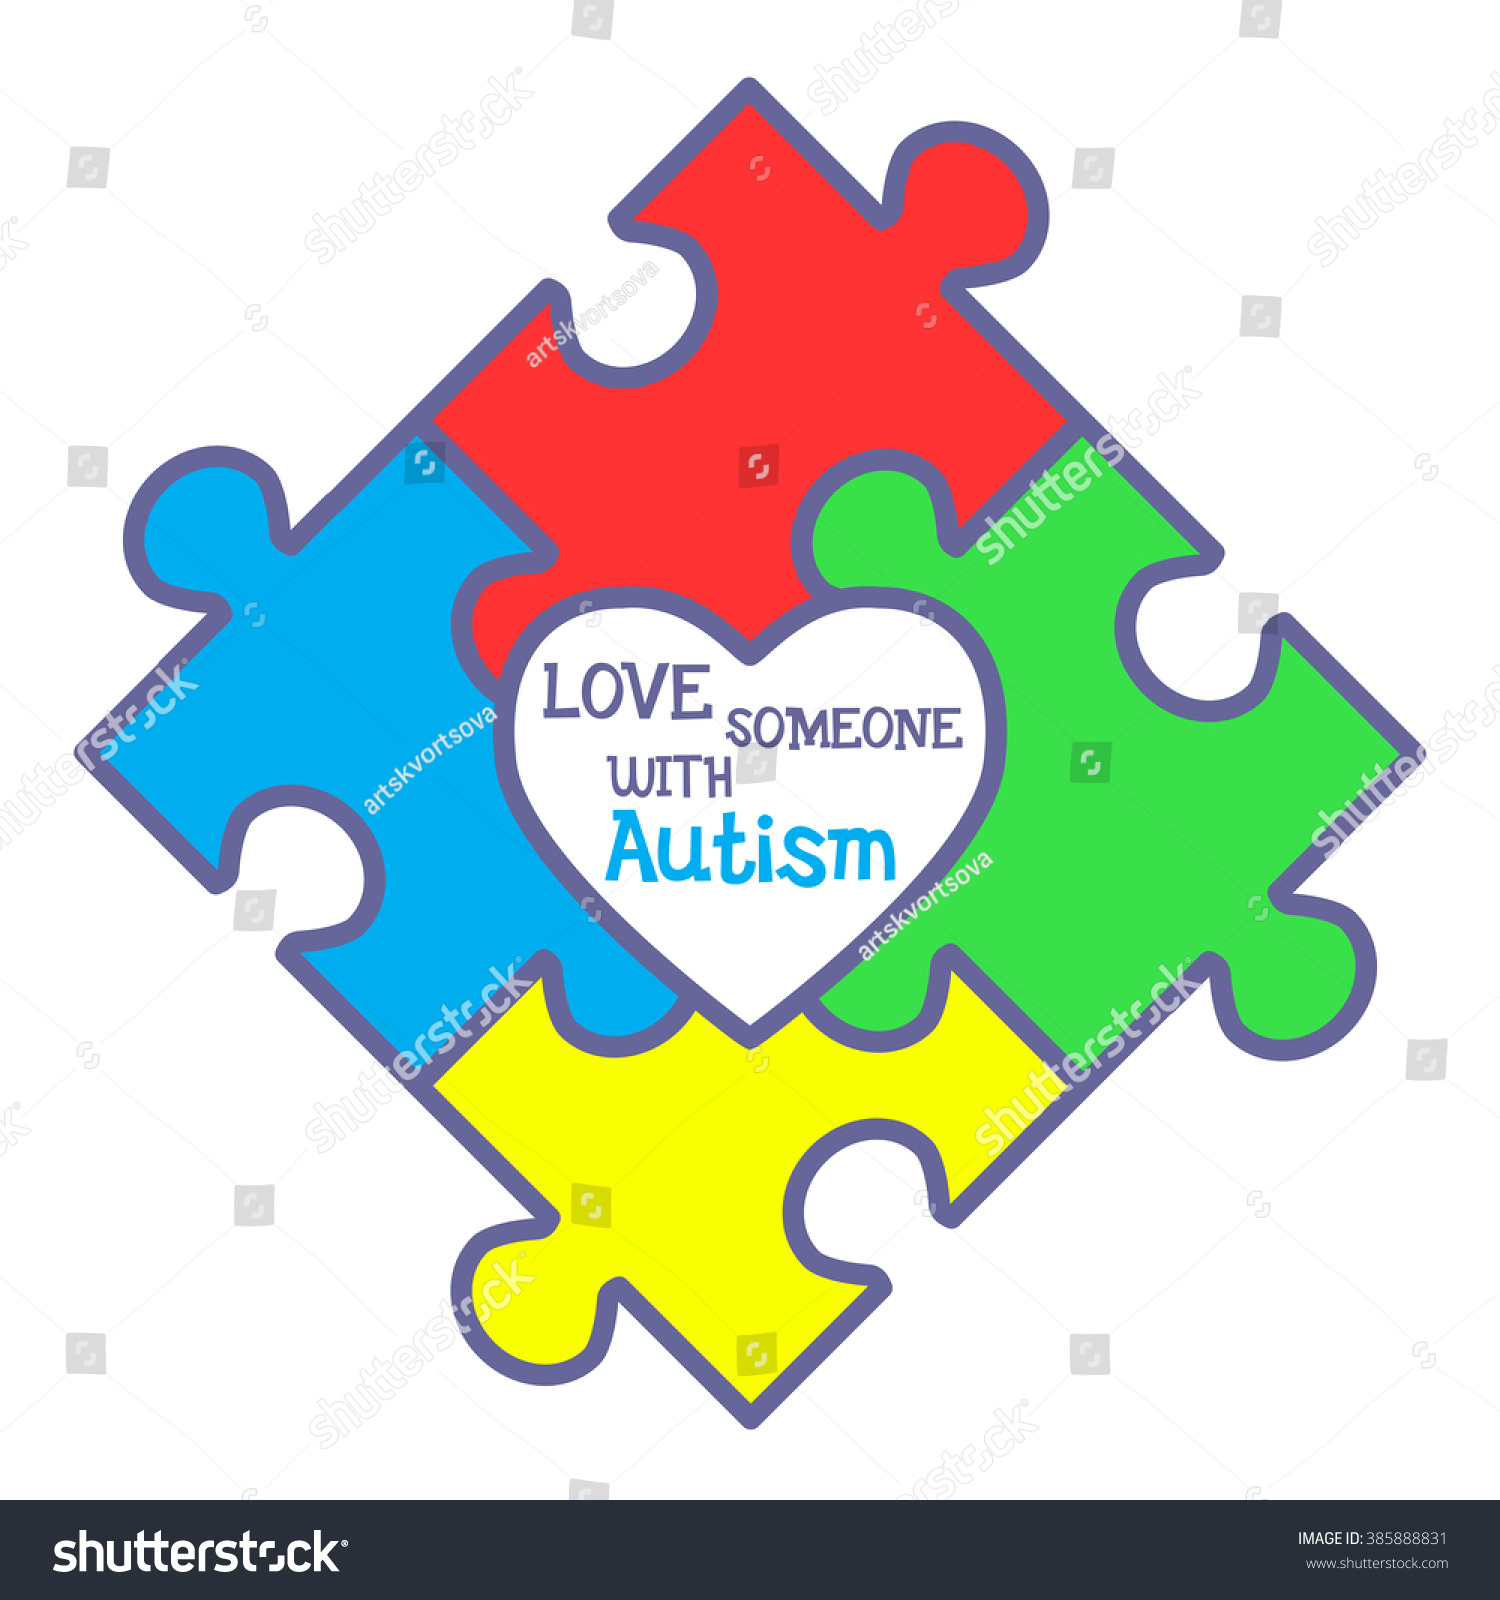 World Autism Awareness Day Colorful Puzzle Stock Vector. Solicited Cover Letter Examples Template. Sample Of Job Ke Liye Application In English. Resume For Apple Store Template. Business Proposal Writers For Hire. Funny Friendship Messages To Best Friend. Microsoft Word Label Templates. Lease Agreement Samples. Social Work Genogram Template 655444